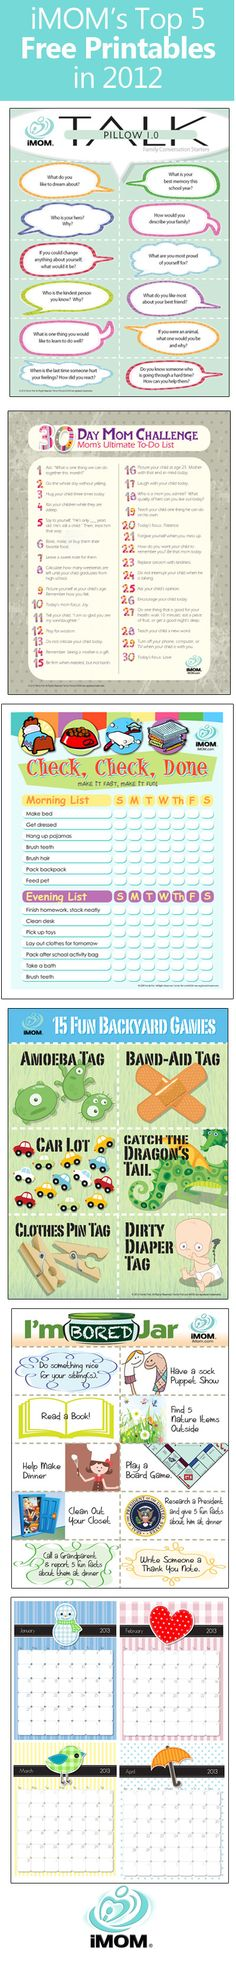 Over 200 printables to help moms! These are Great! imom.com/tools/